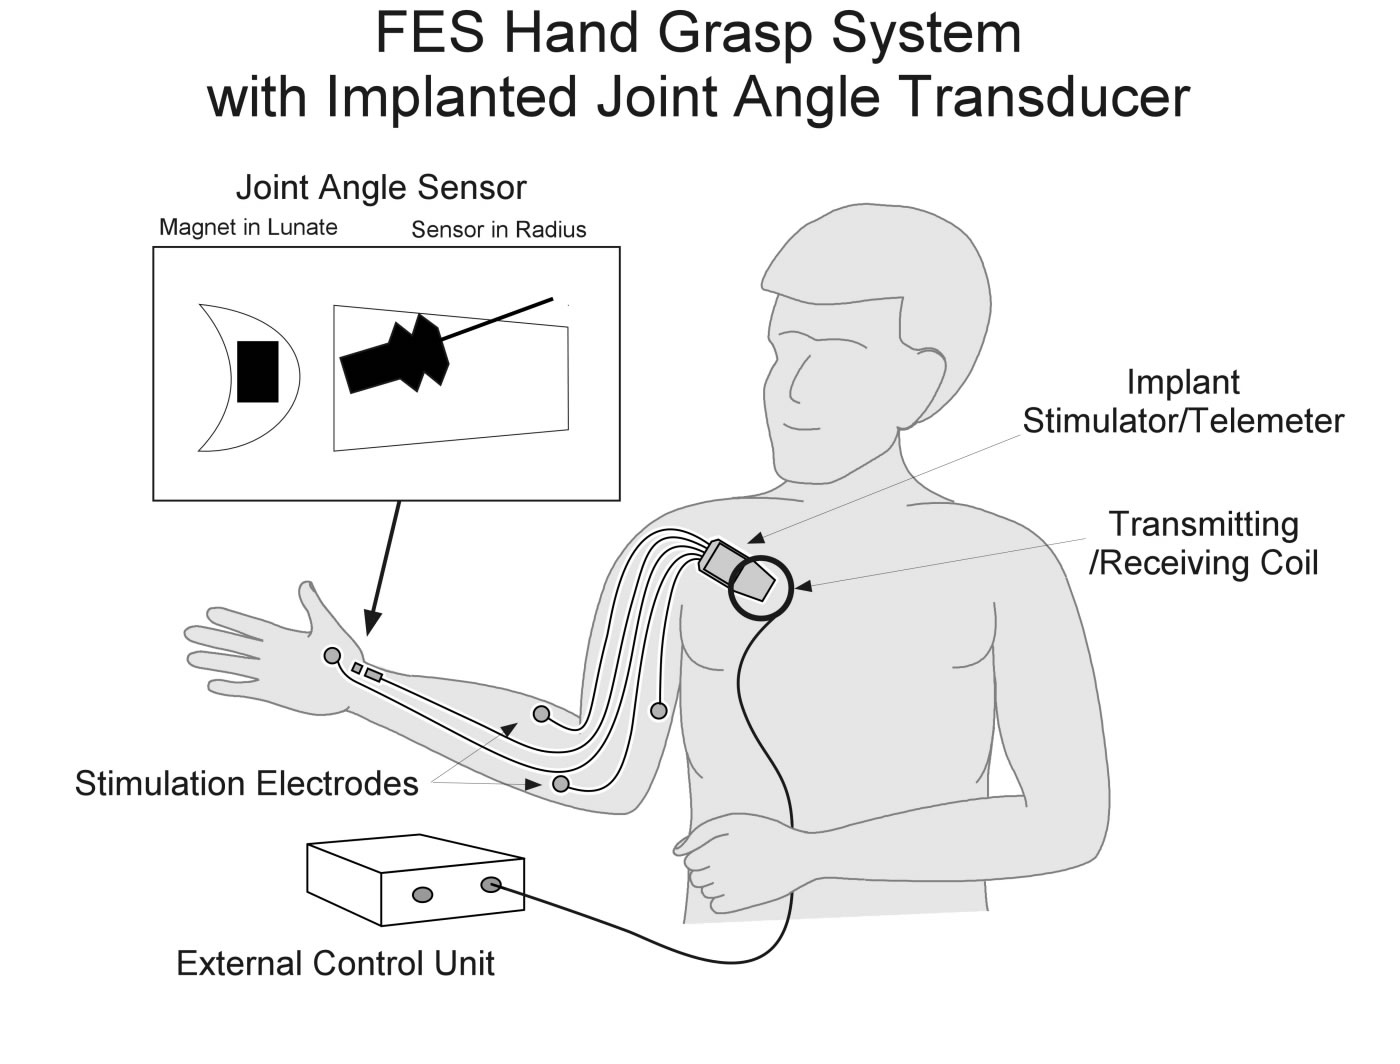 Implementation Of An Implantable Joint Angle Transducer